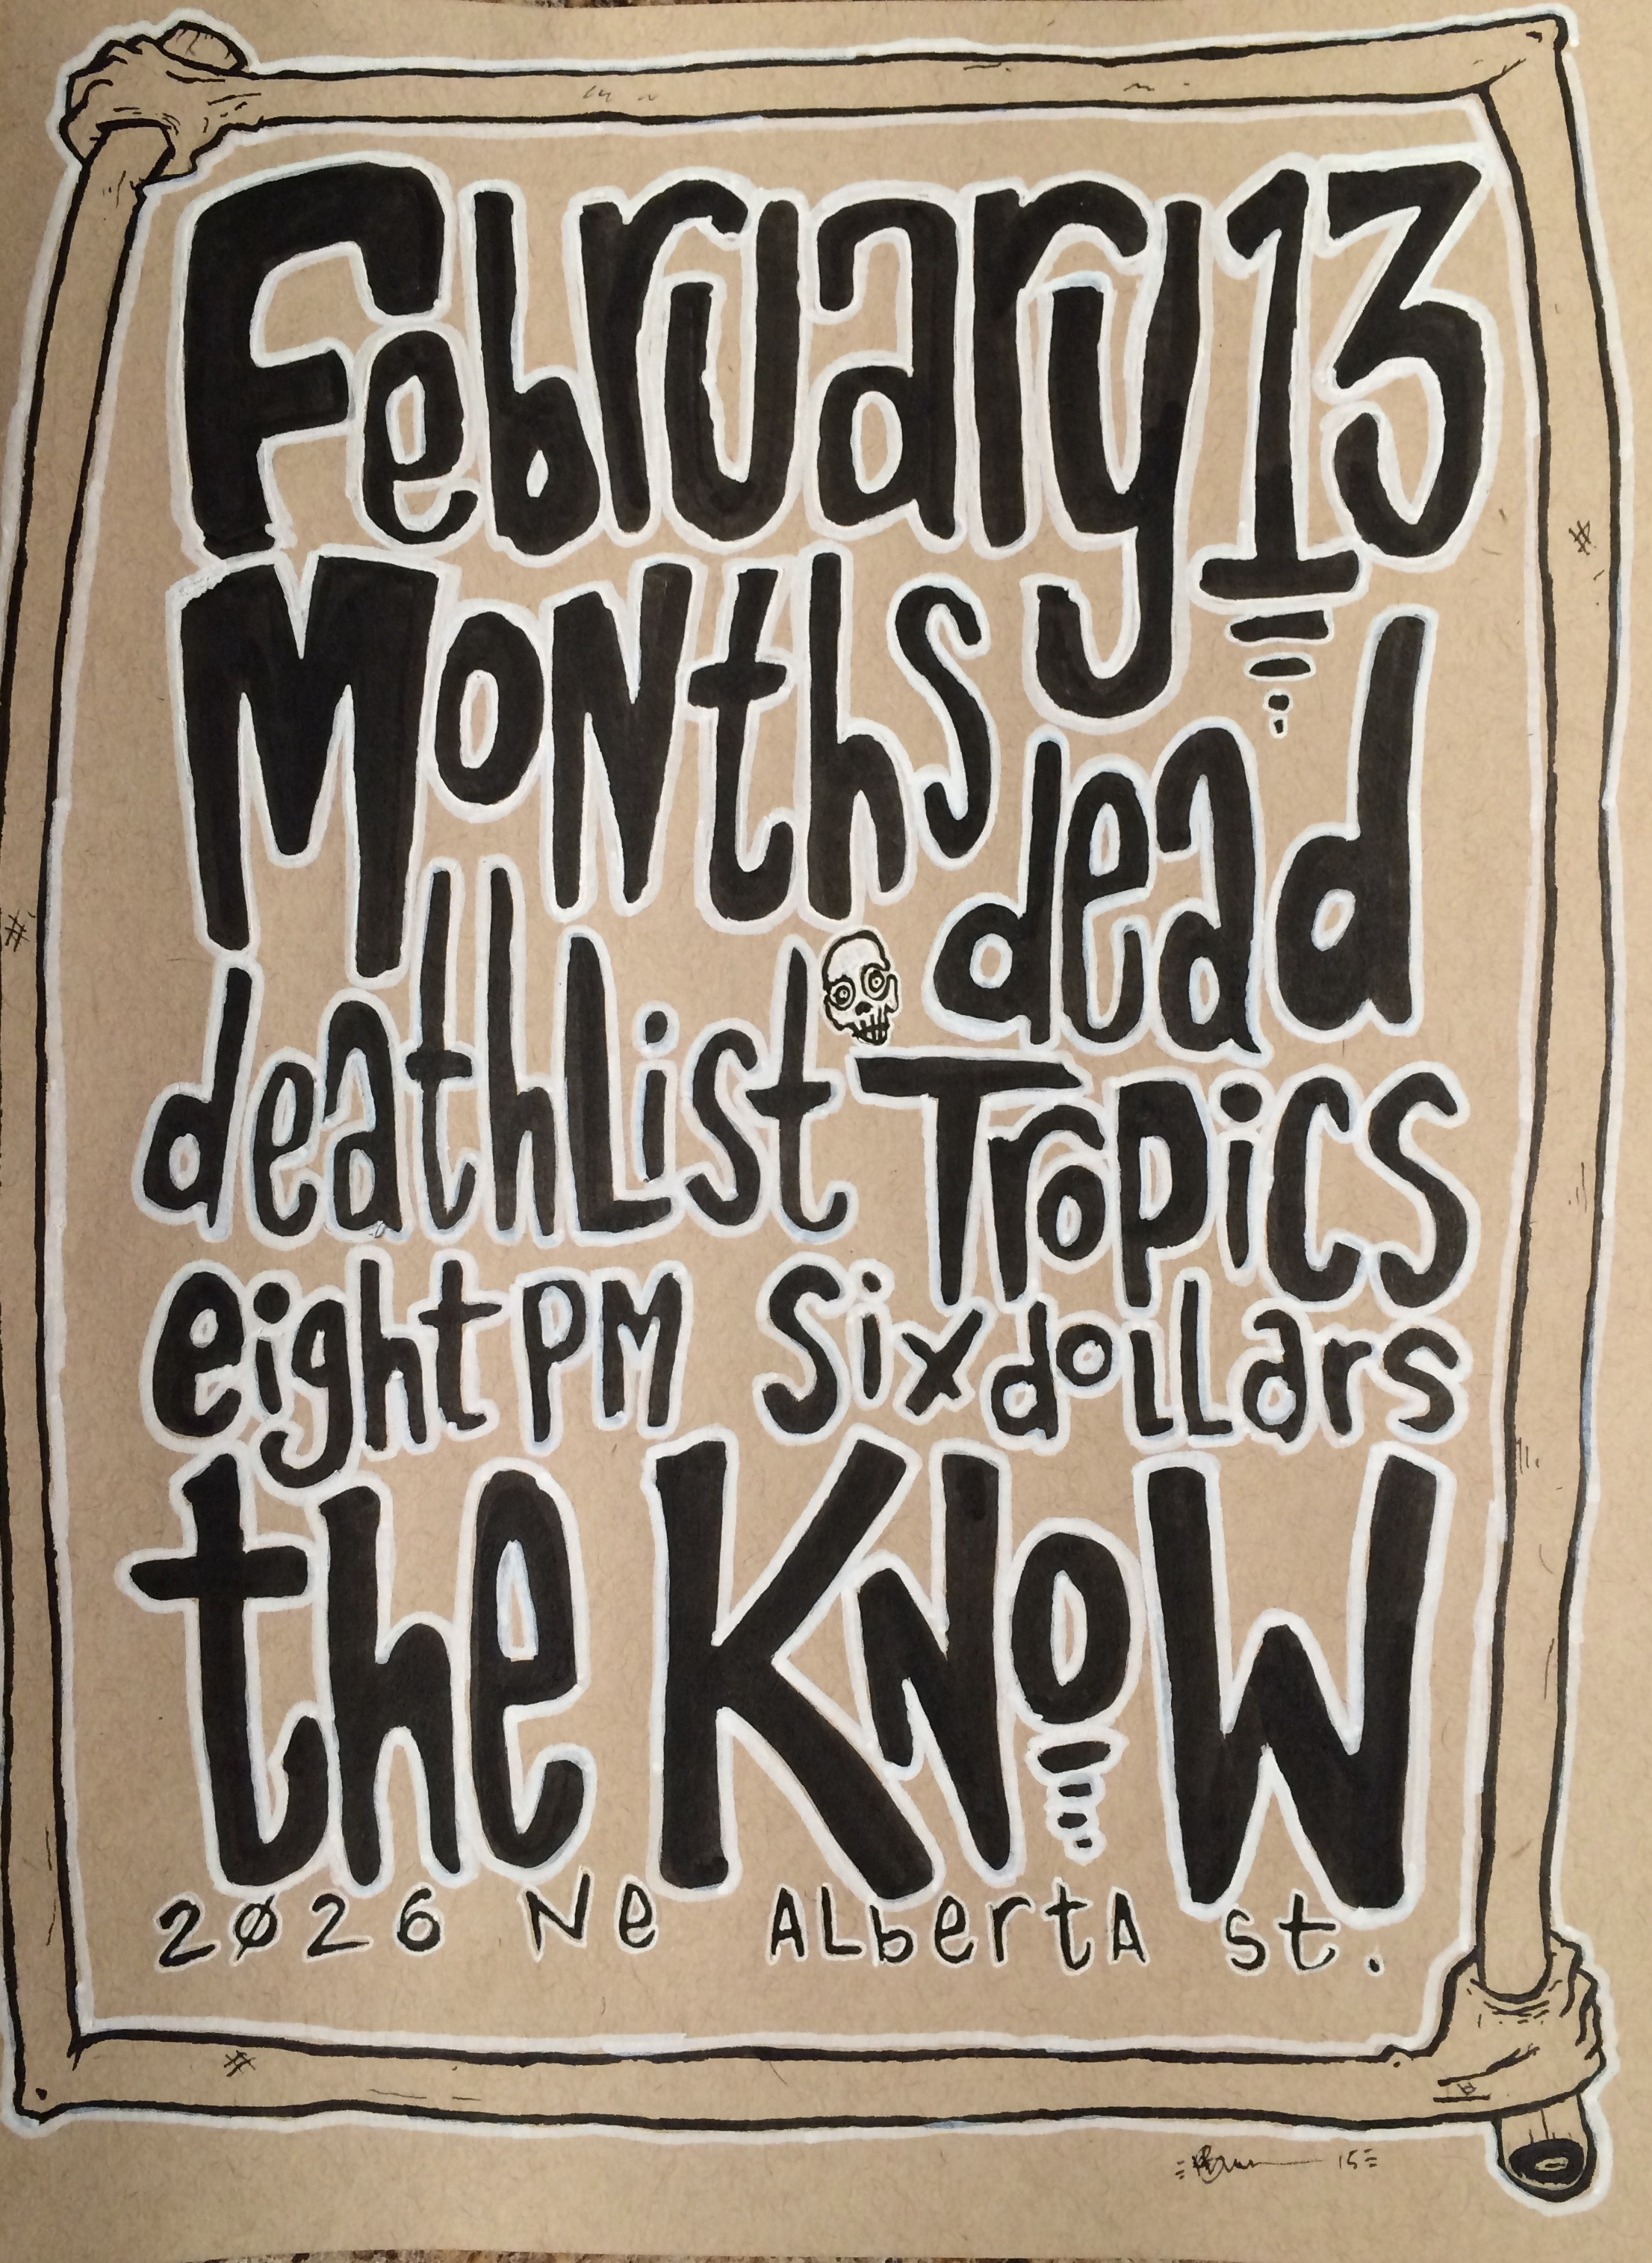 months w/ deathlist & dead tropics at the know